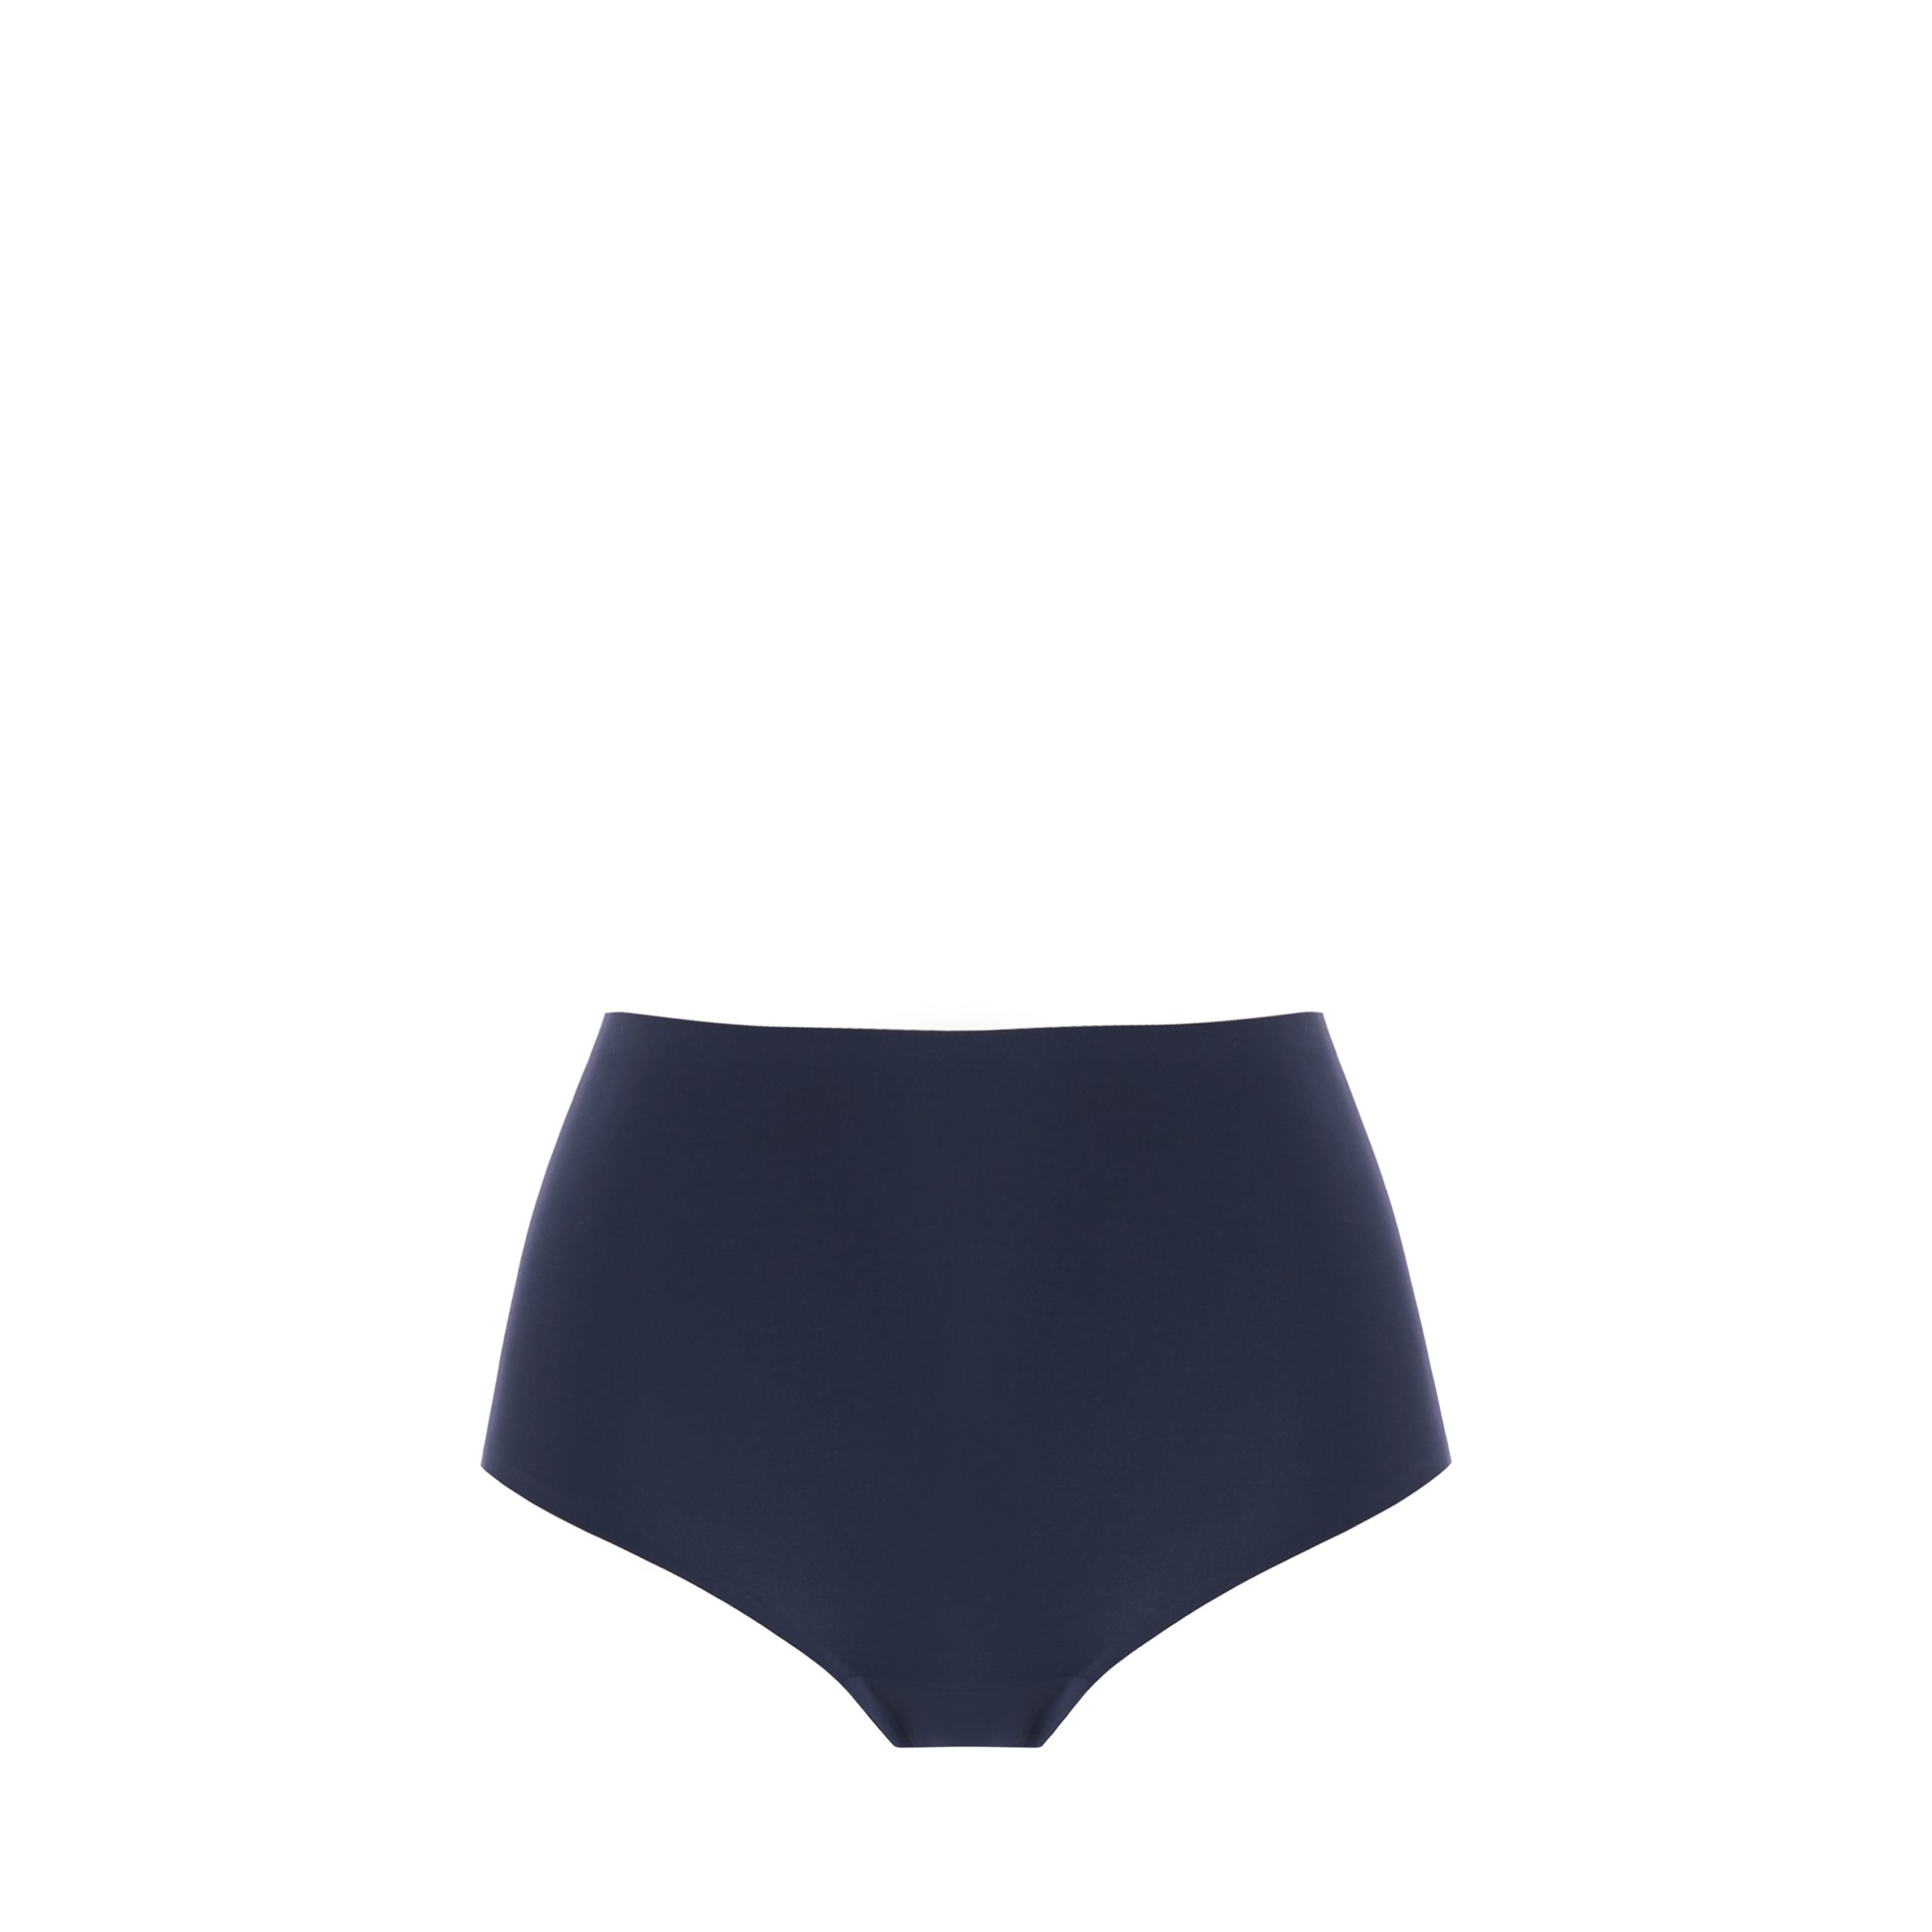 SMOOTHEASE INVISIBLE STRETCH FULL BRIEF NAVY